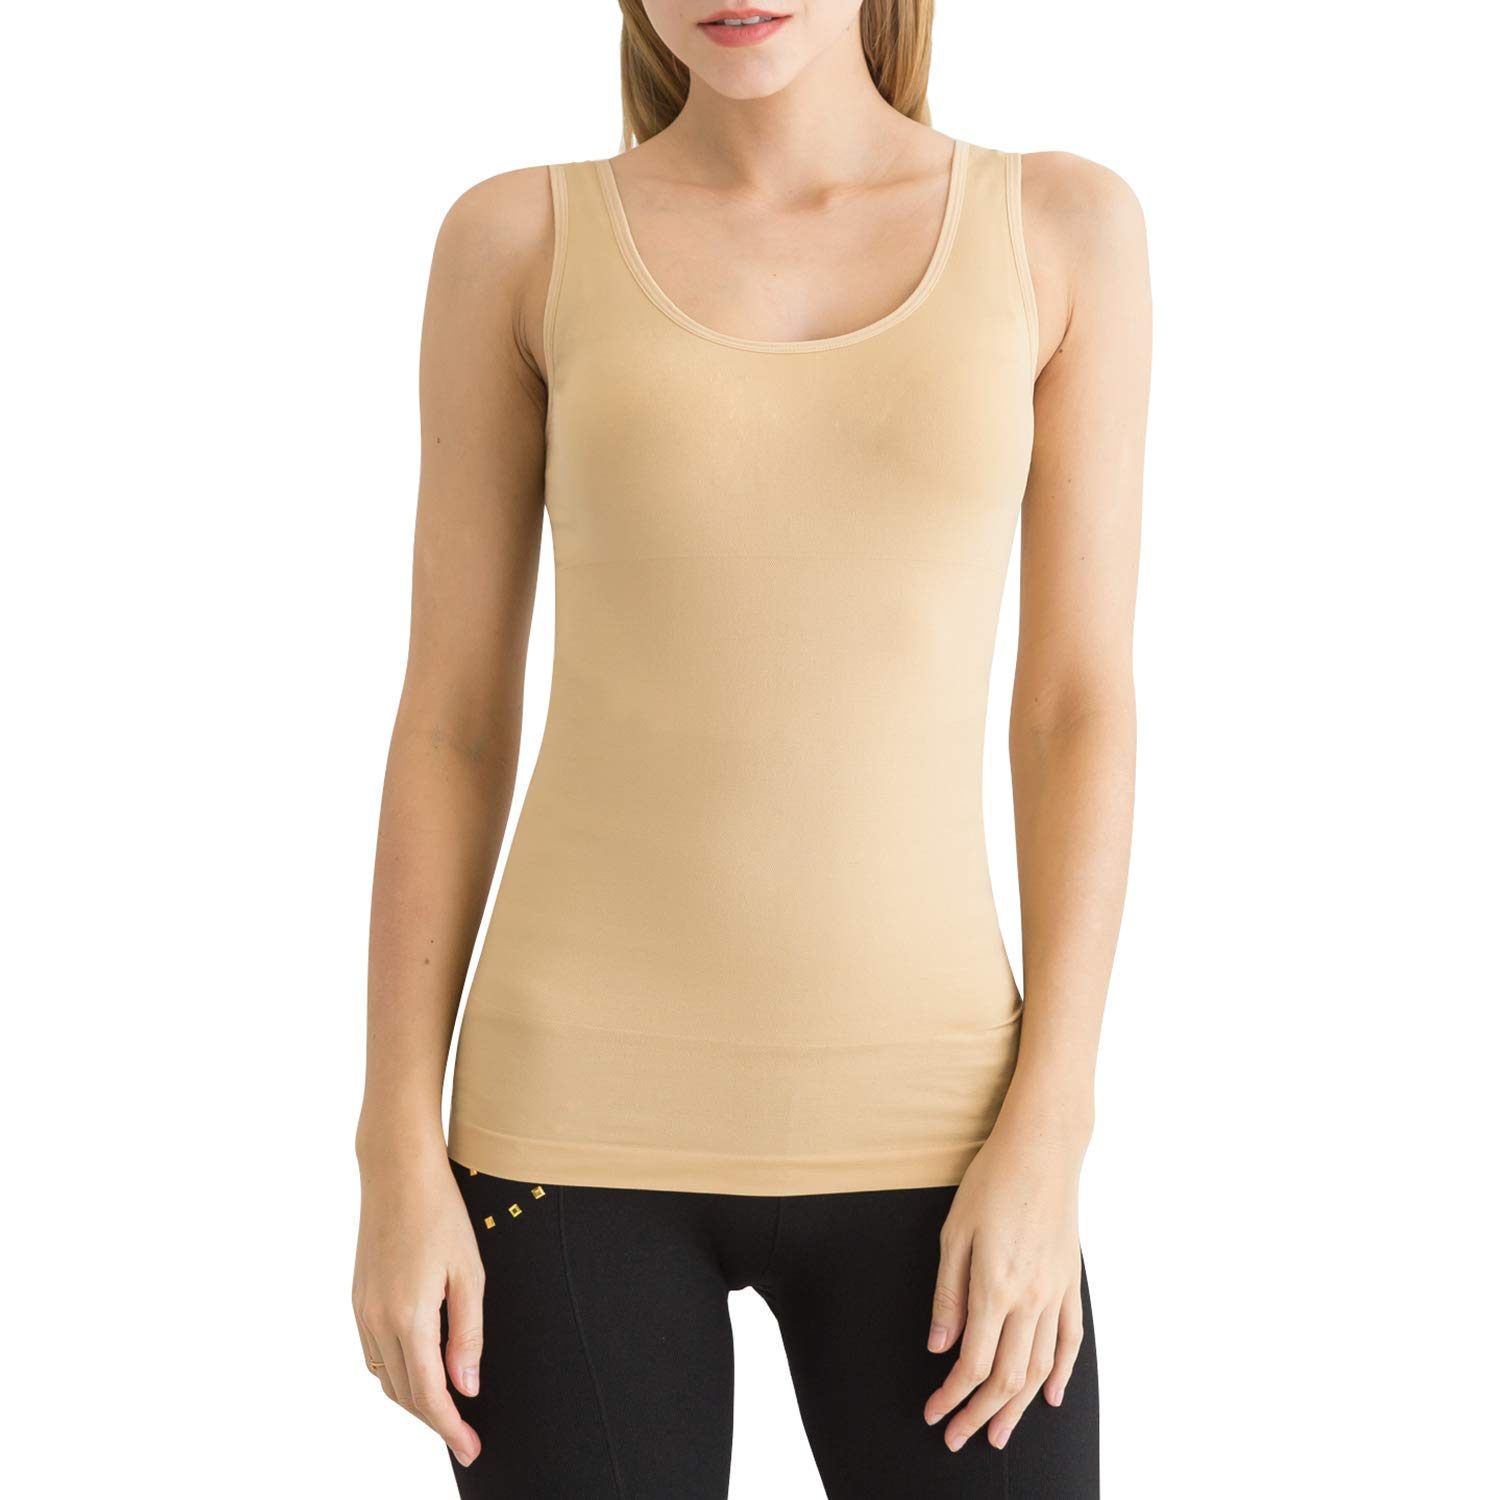 5ab3894ce69 SlendShaper Women s Shapewear Tank Top Firm Tummy Control Shaper Seamless Slimming  Shaping Tanks at Amazon Women s Clothing store